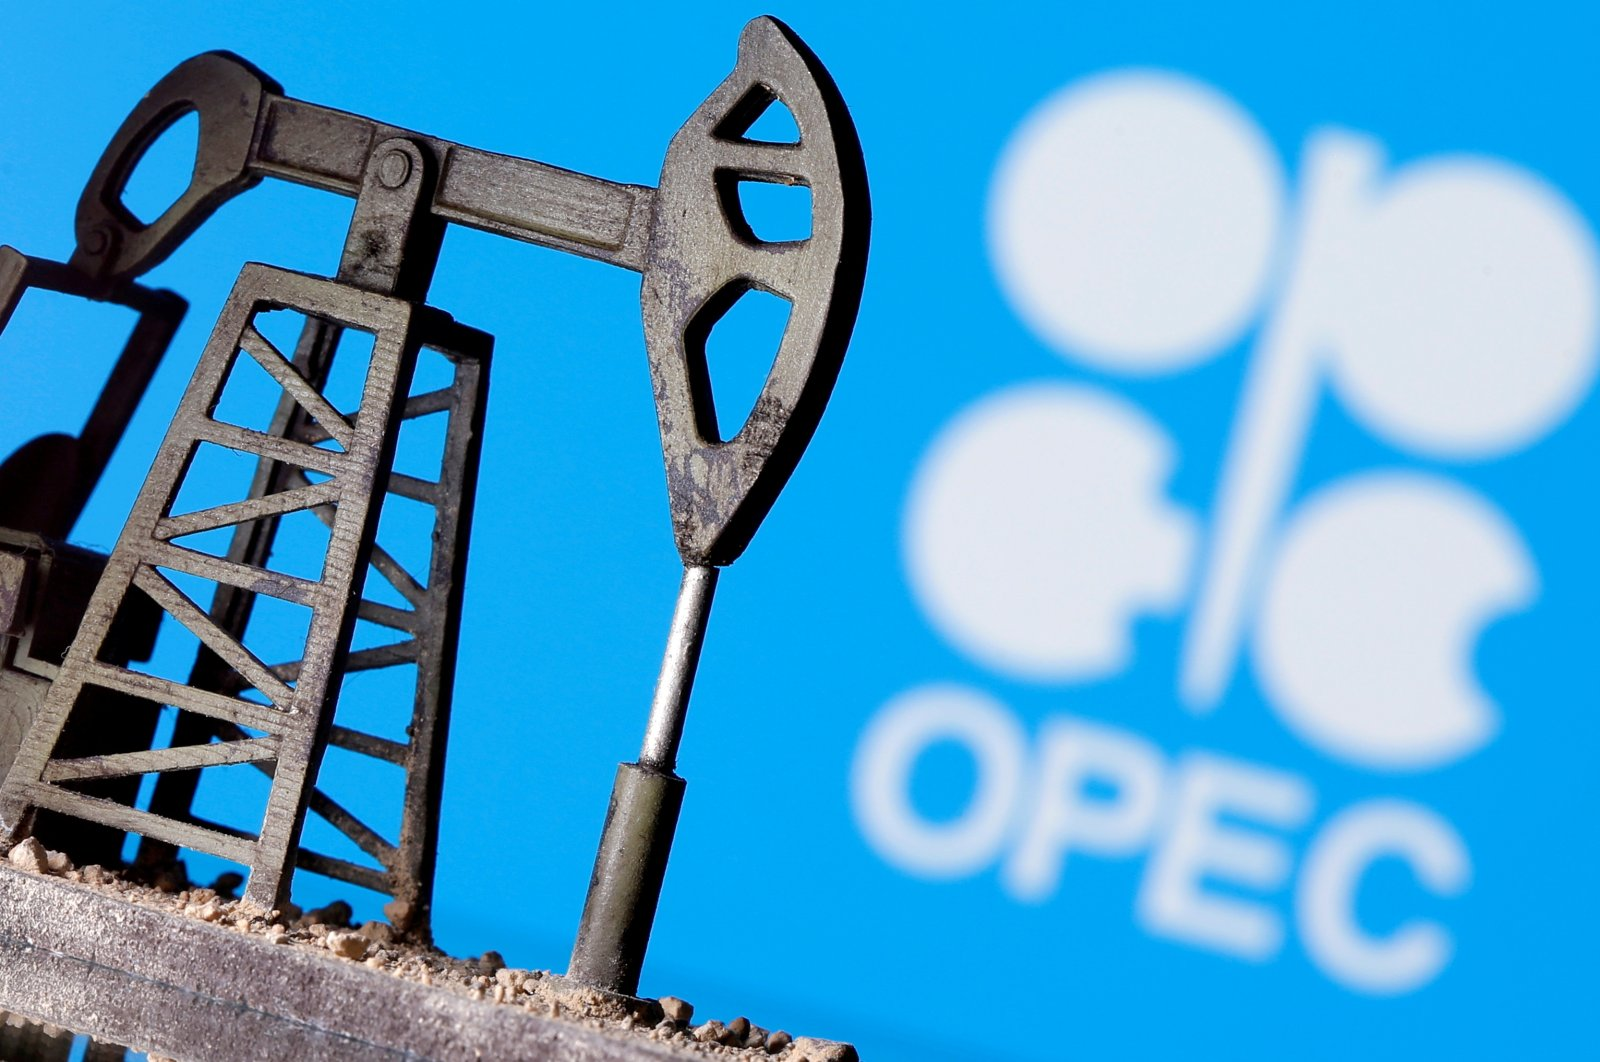 A 3D-printed oil pump jack is seen in front of displayed OPEC logo in this illustration picture, April 14, 2020. (Reuters Photo)